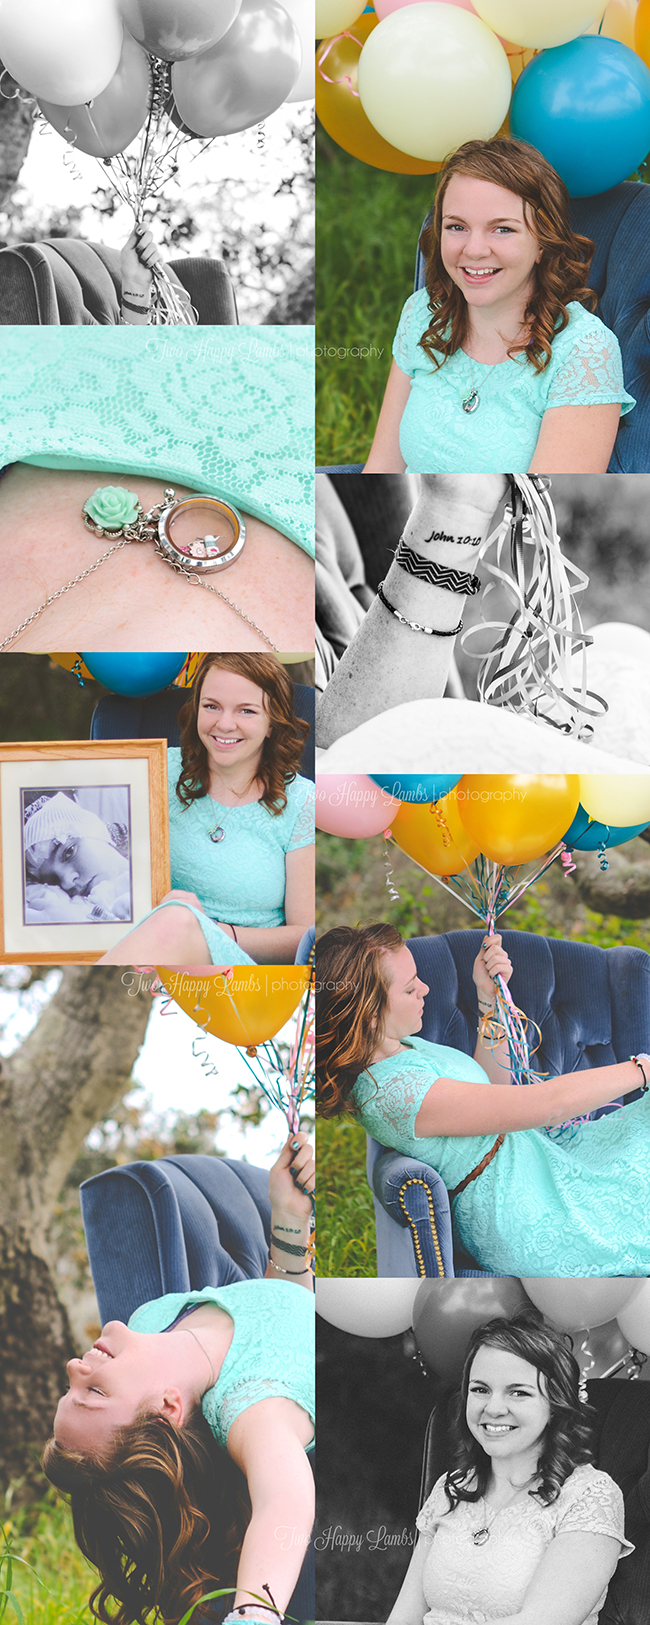 recovery-celebration-scripture-central-coast-photographer-two-happy-lambs-a